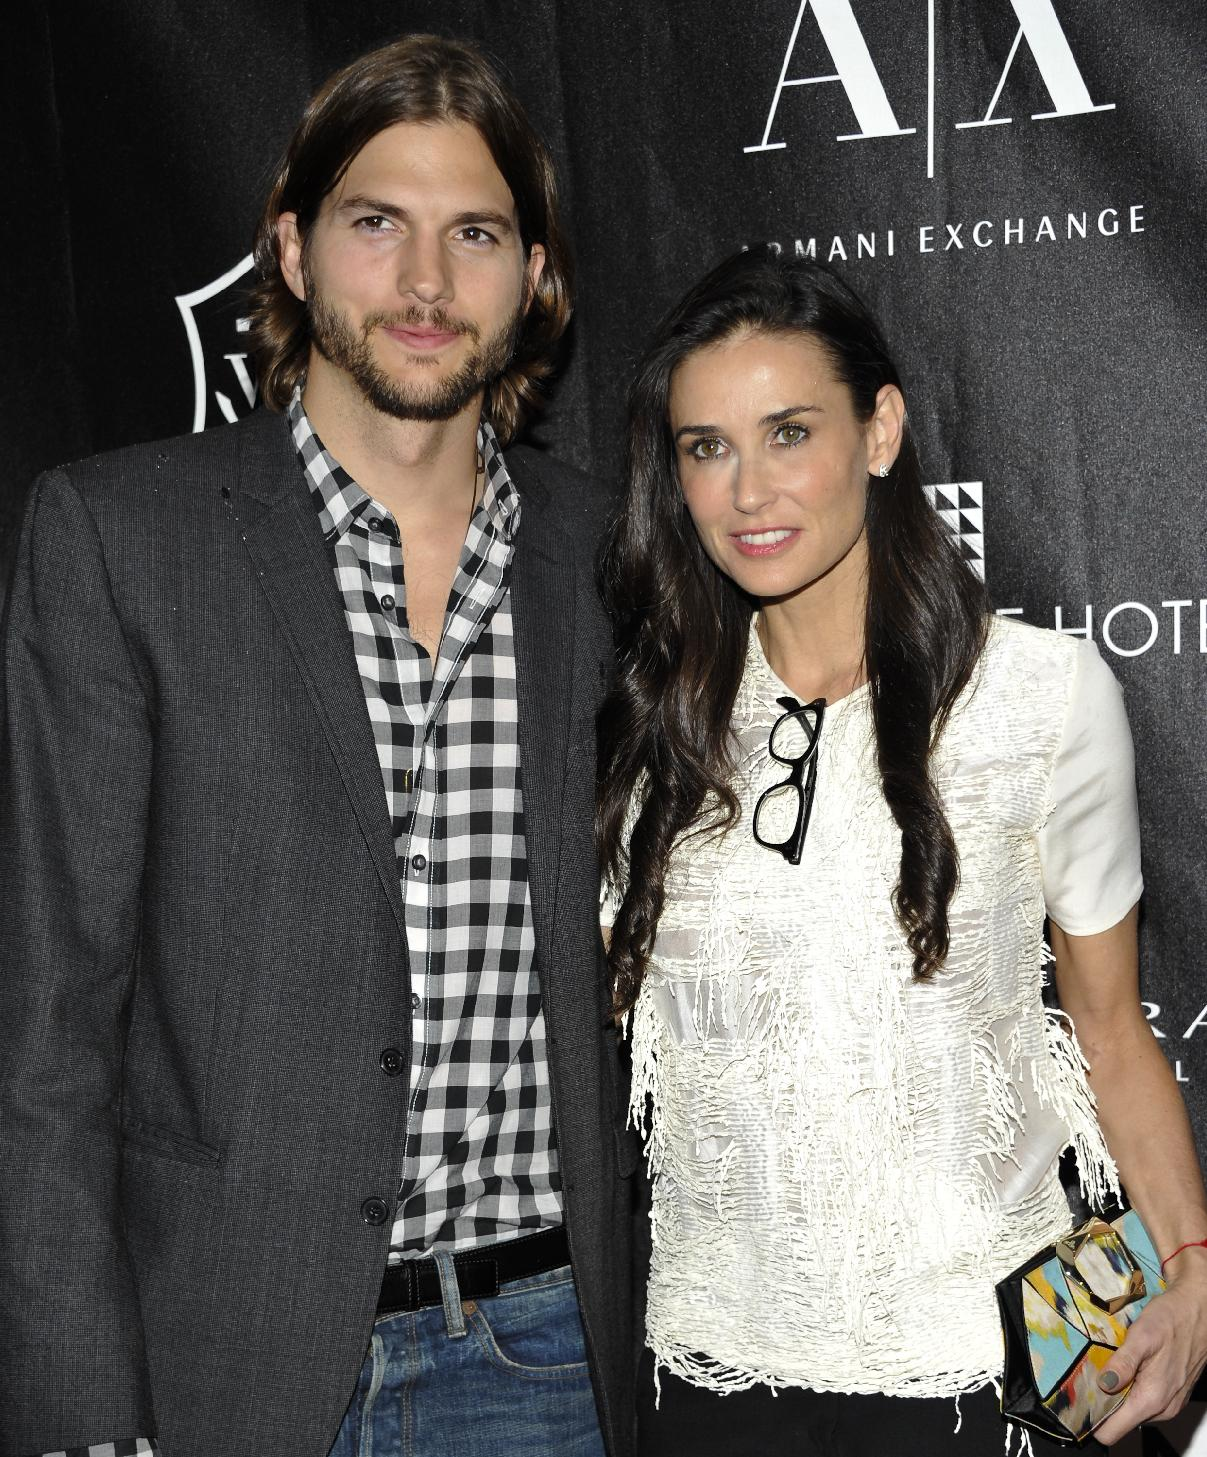 APNewsBreak: Demi Moore to divorce Ashton Kutcher